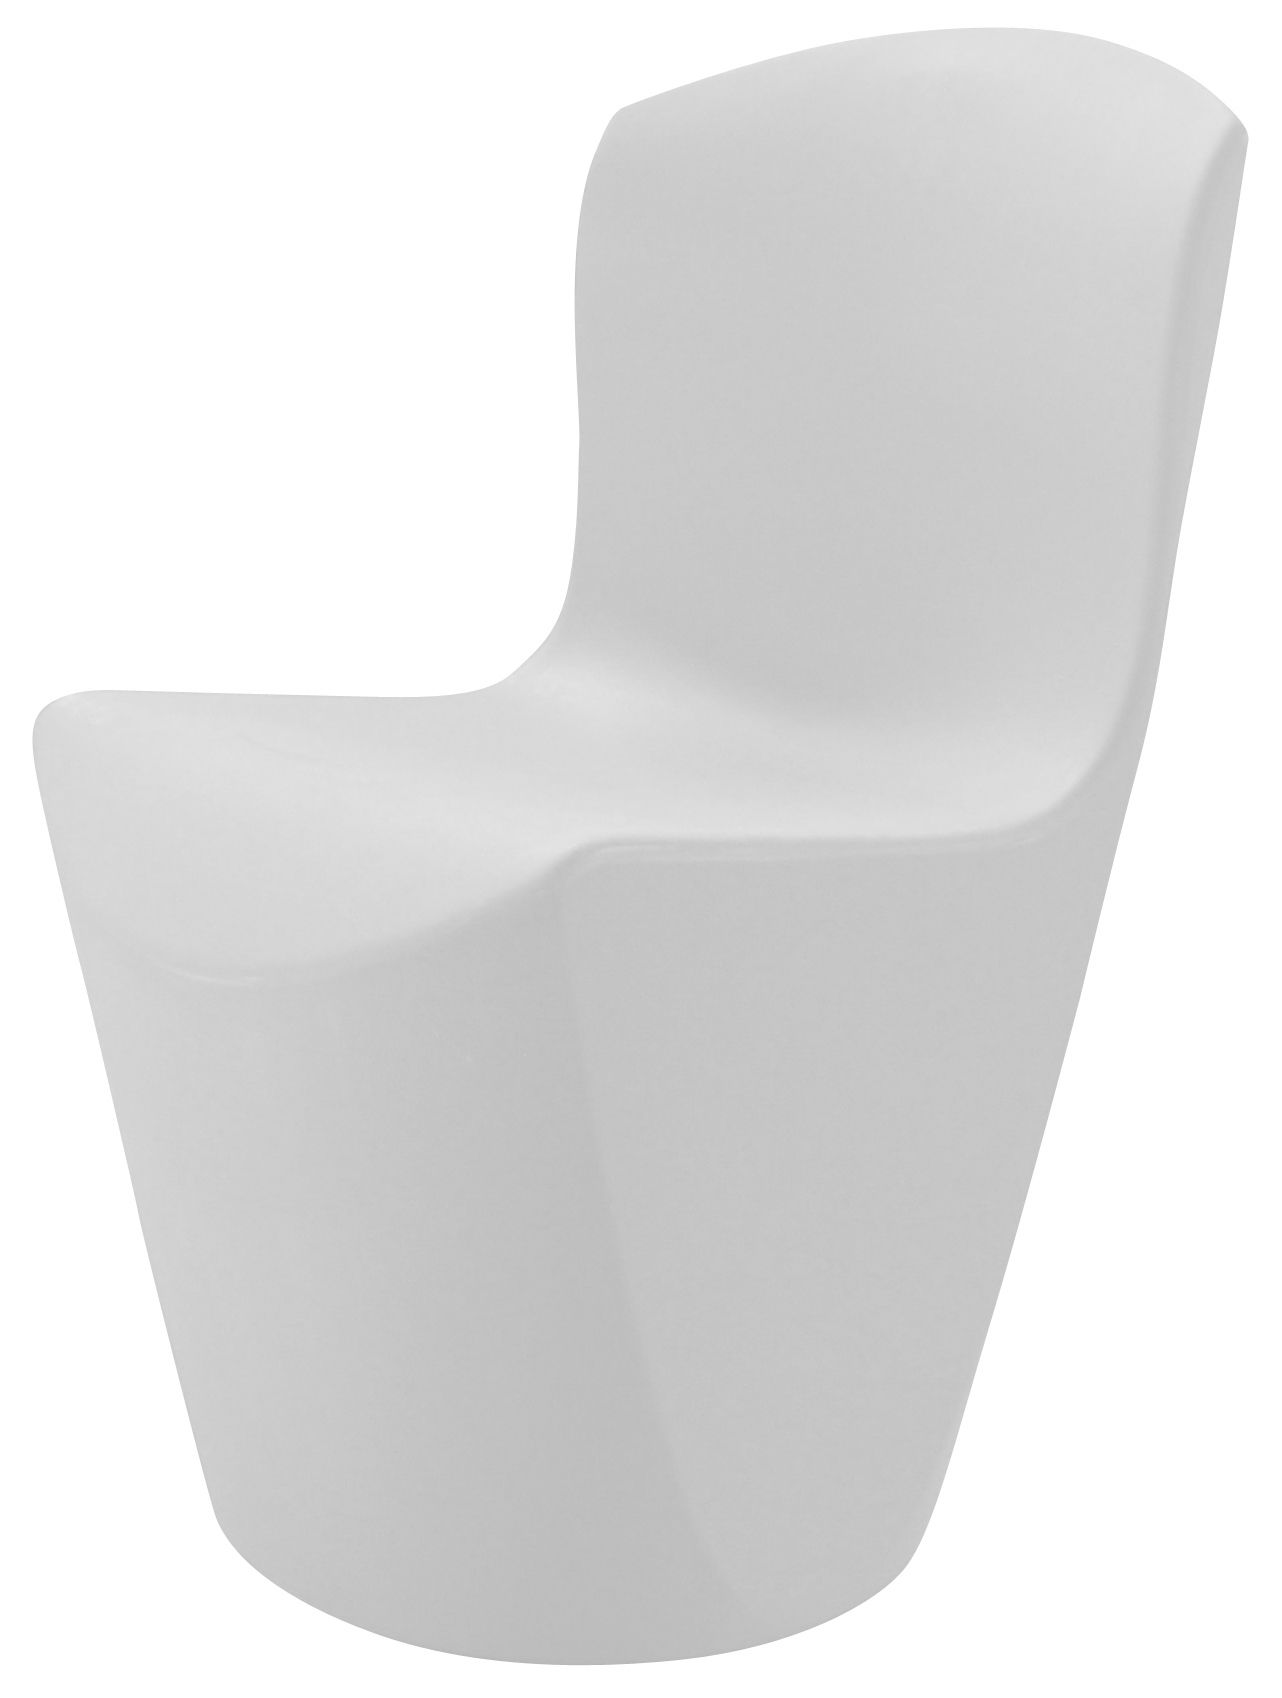 Furniture - Chairs - Zoe Chair - Plastic by Slide - White - Polythene